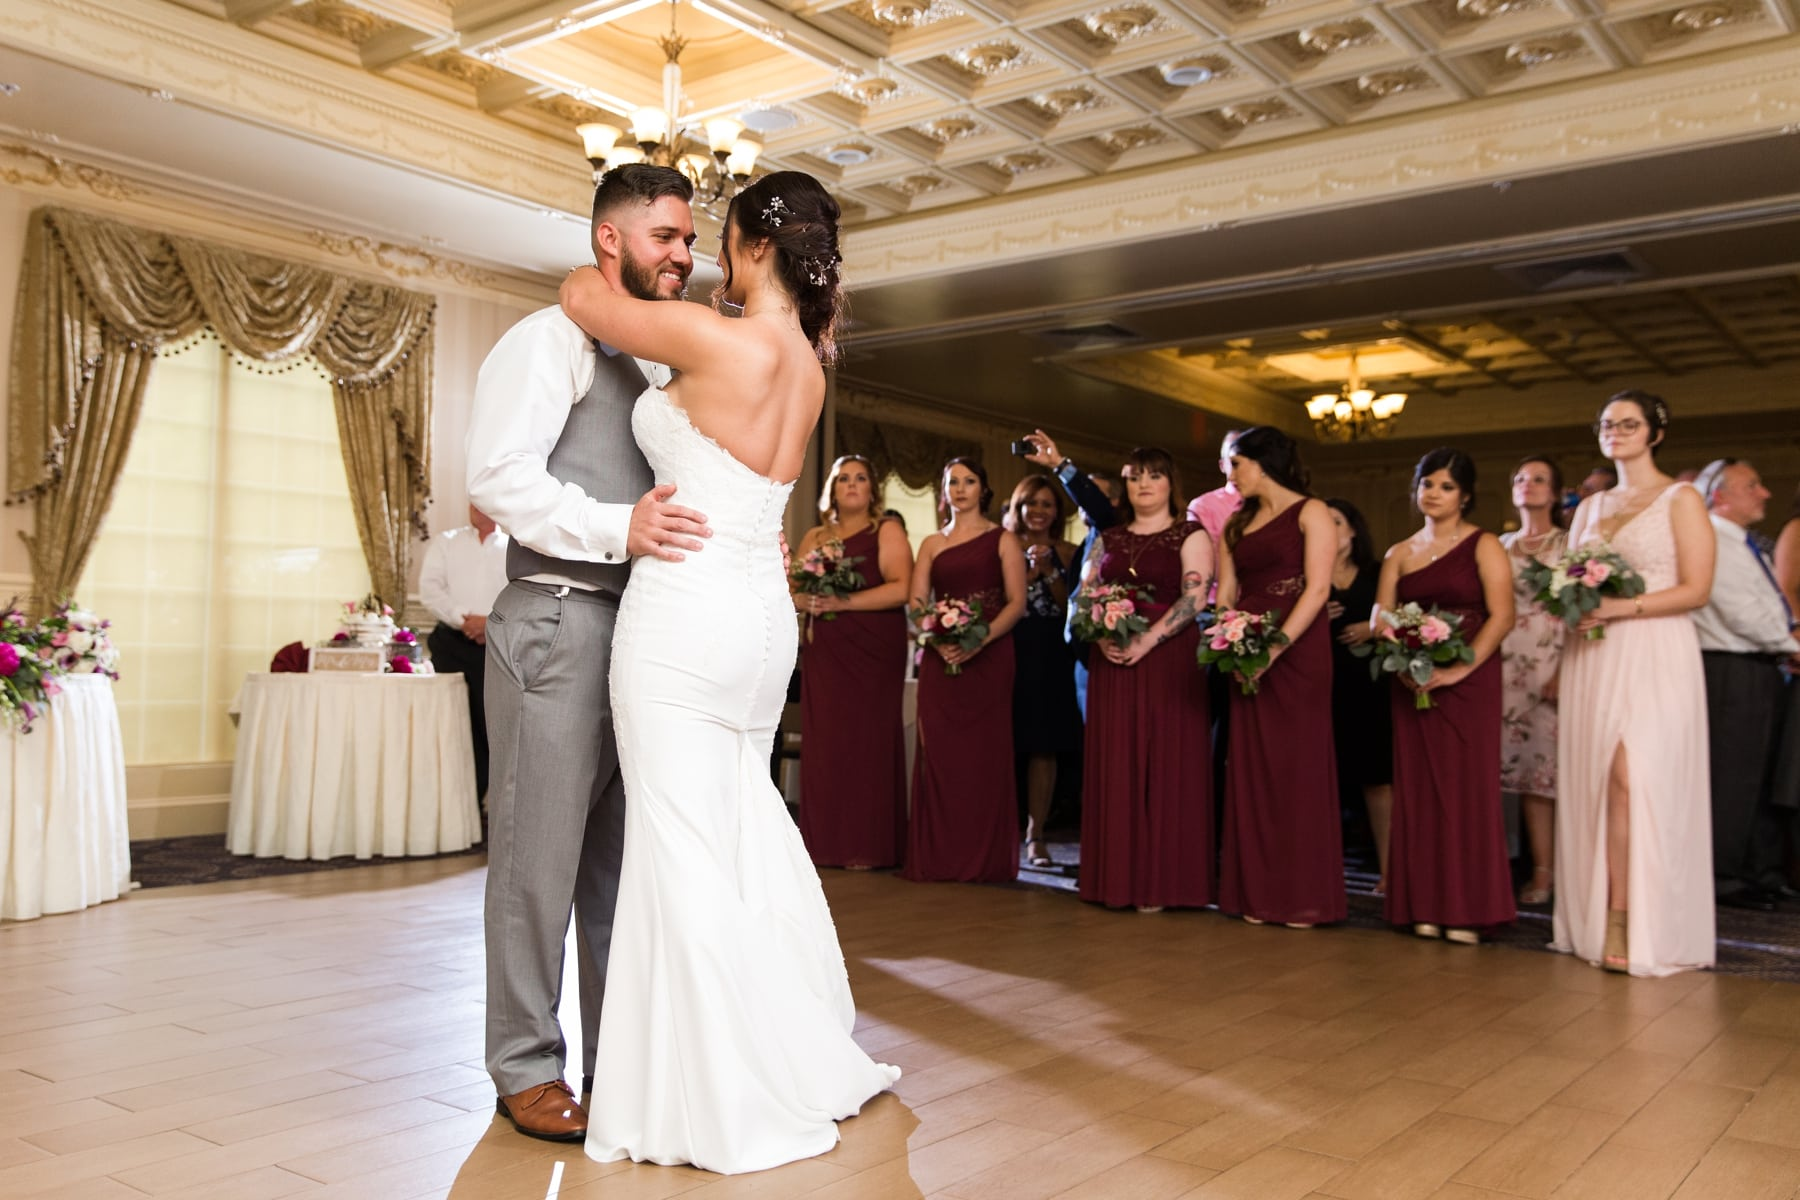 Jennifer + Travis\'s Wedding at the Hilton Garden Inn in Hamilton, NJ ...